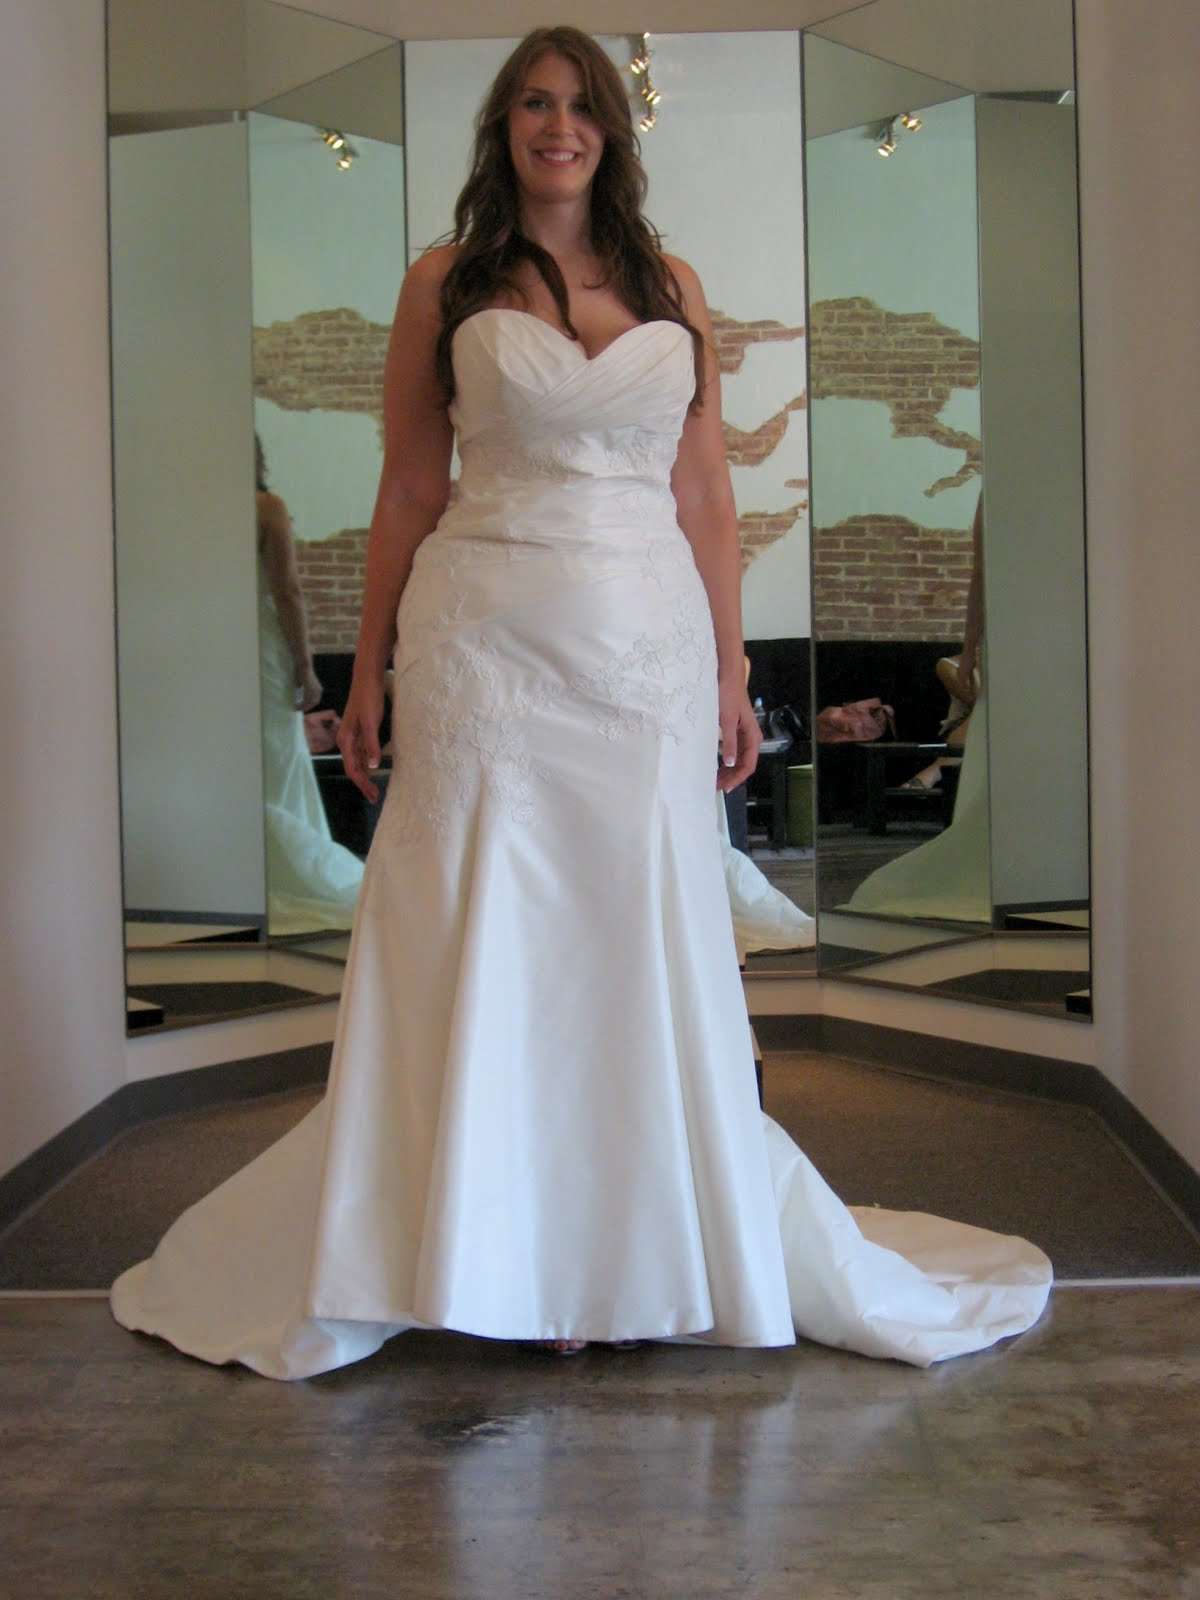 Misadventures Managed: Wedding Dress Shopping!